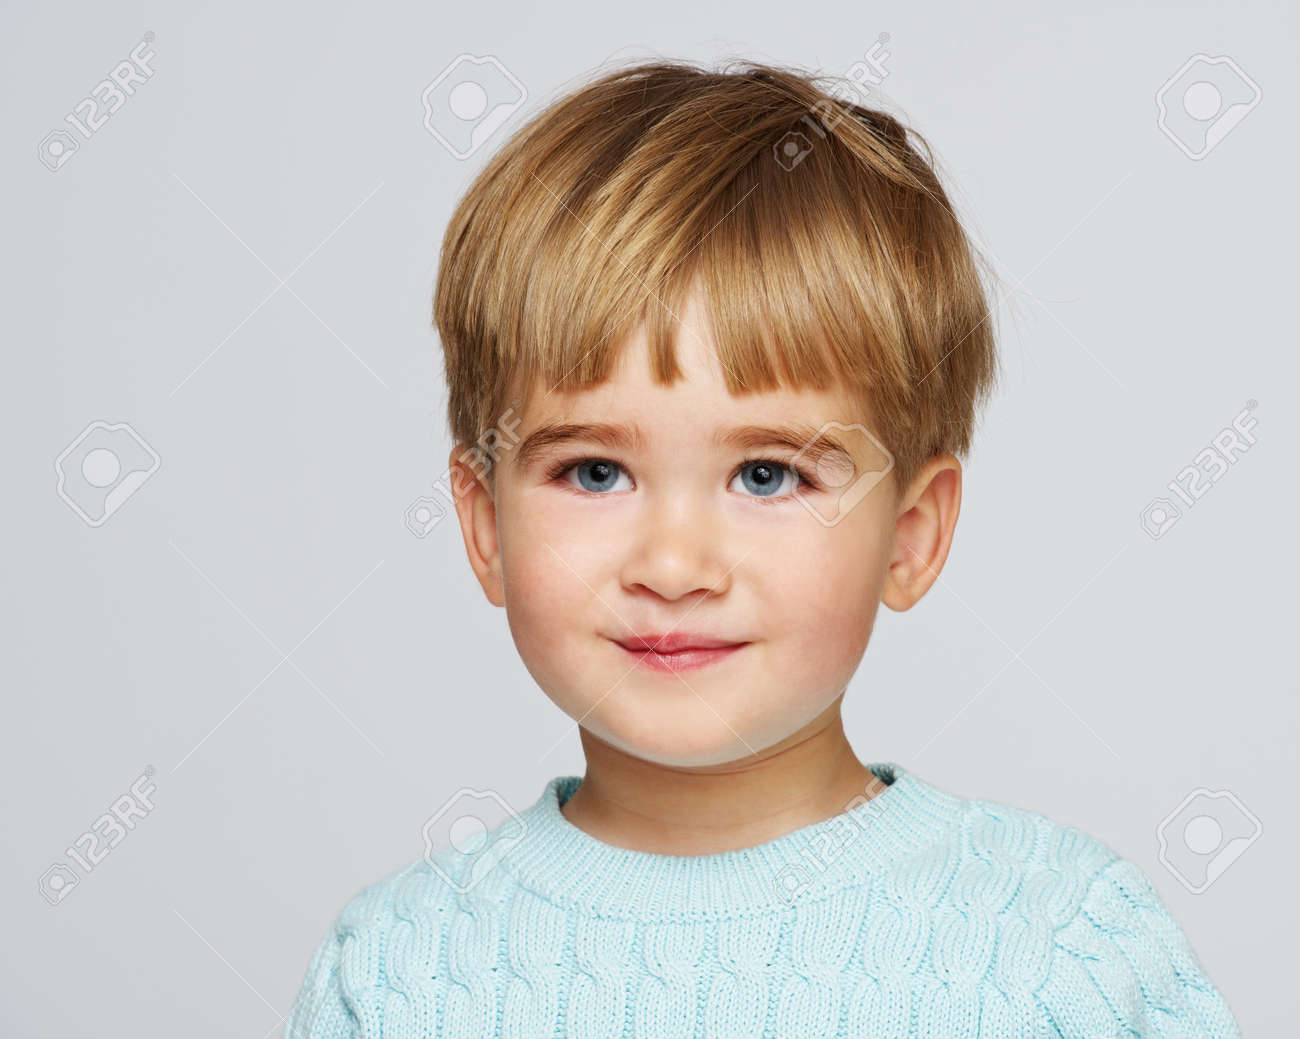 Smiling baby boy in blue pullover portrait Stock Photo - 14082204